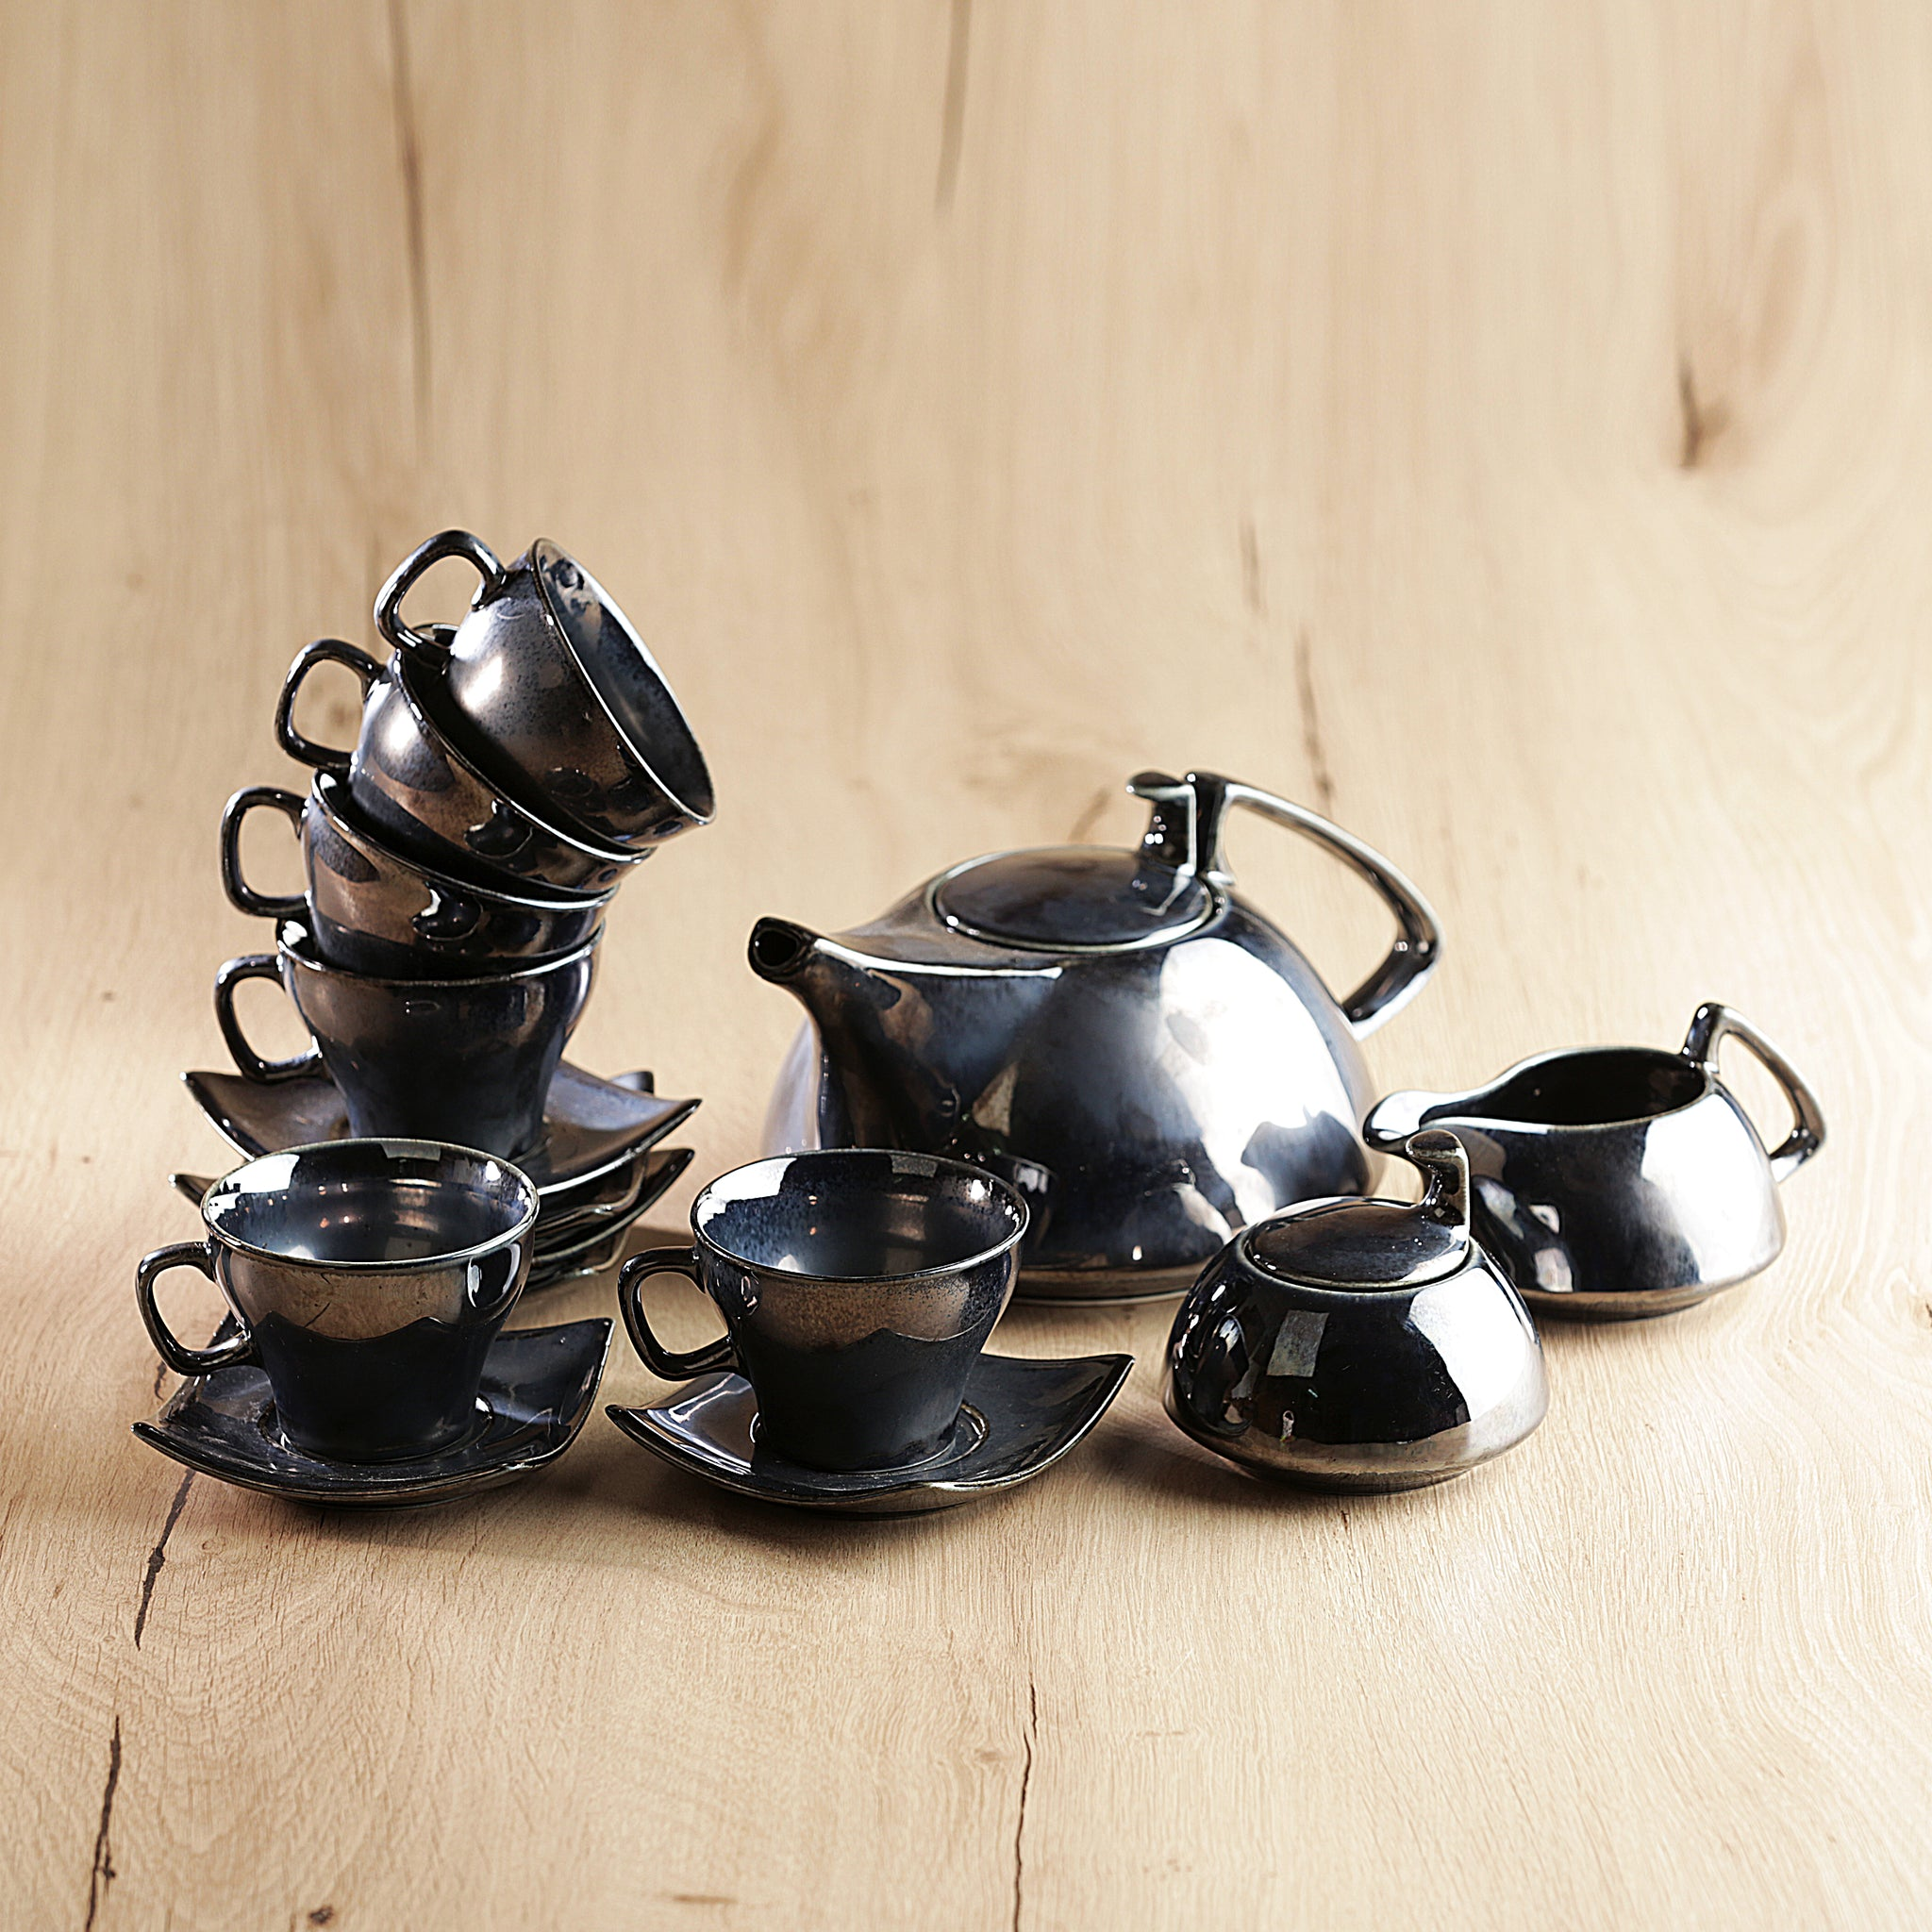 Metallic Noveau Tea Set of 15 pcs